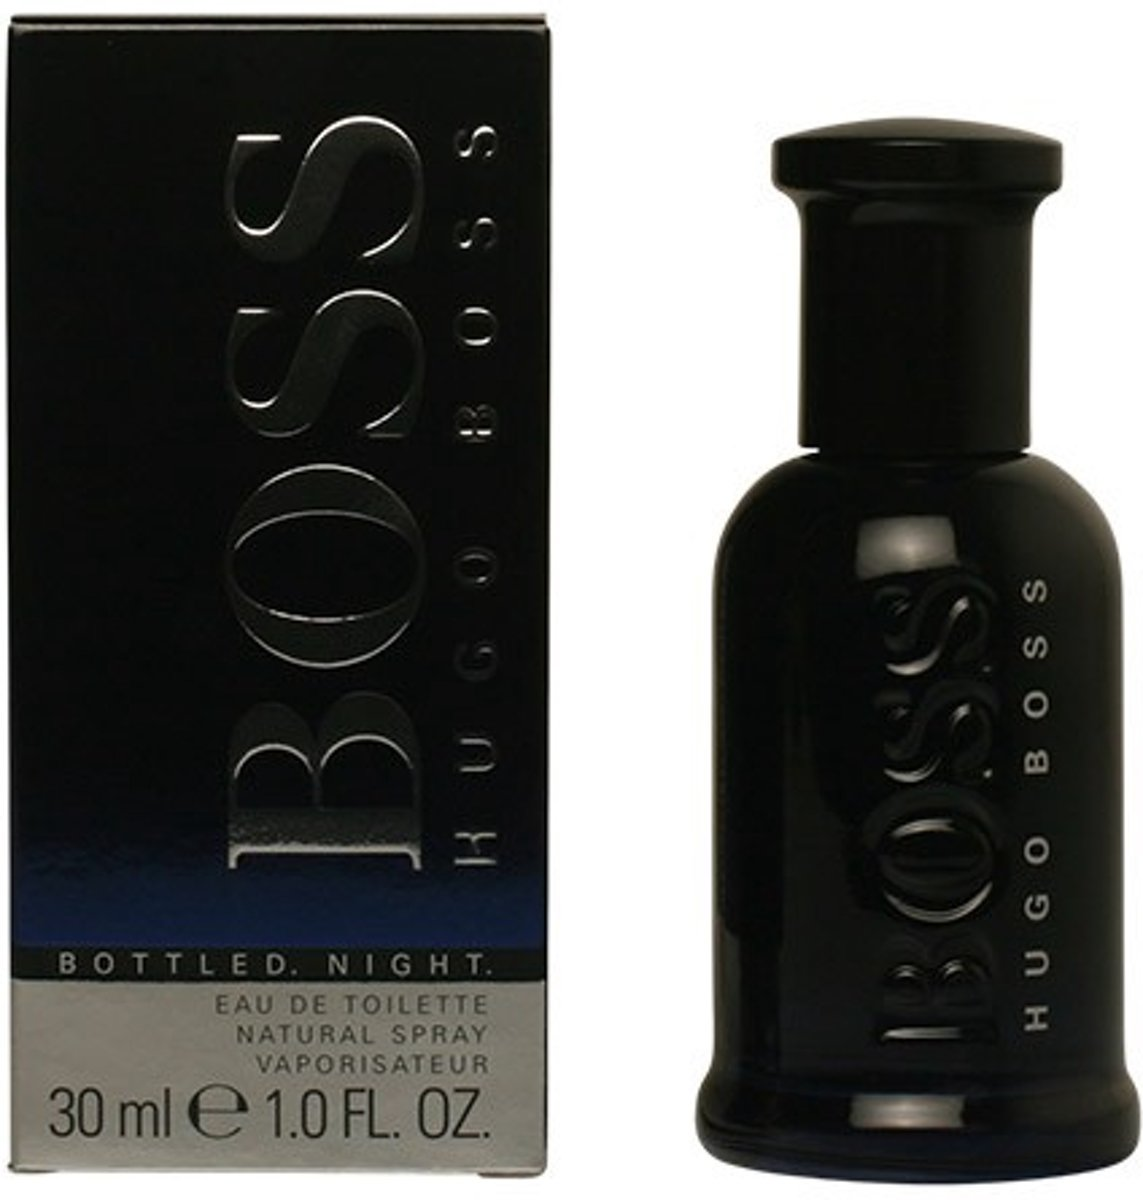 PROMO 2 stuks BOSS BOTTLED NIGHT eau de toilette spray 30 ml